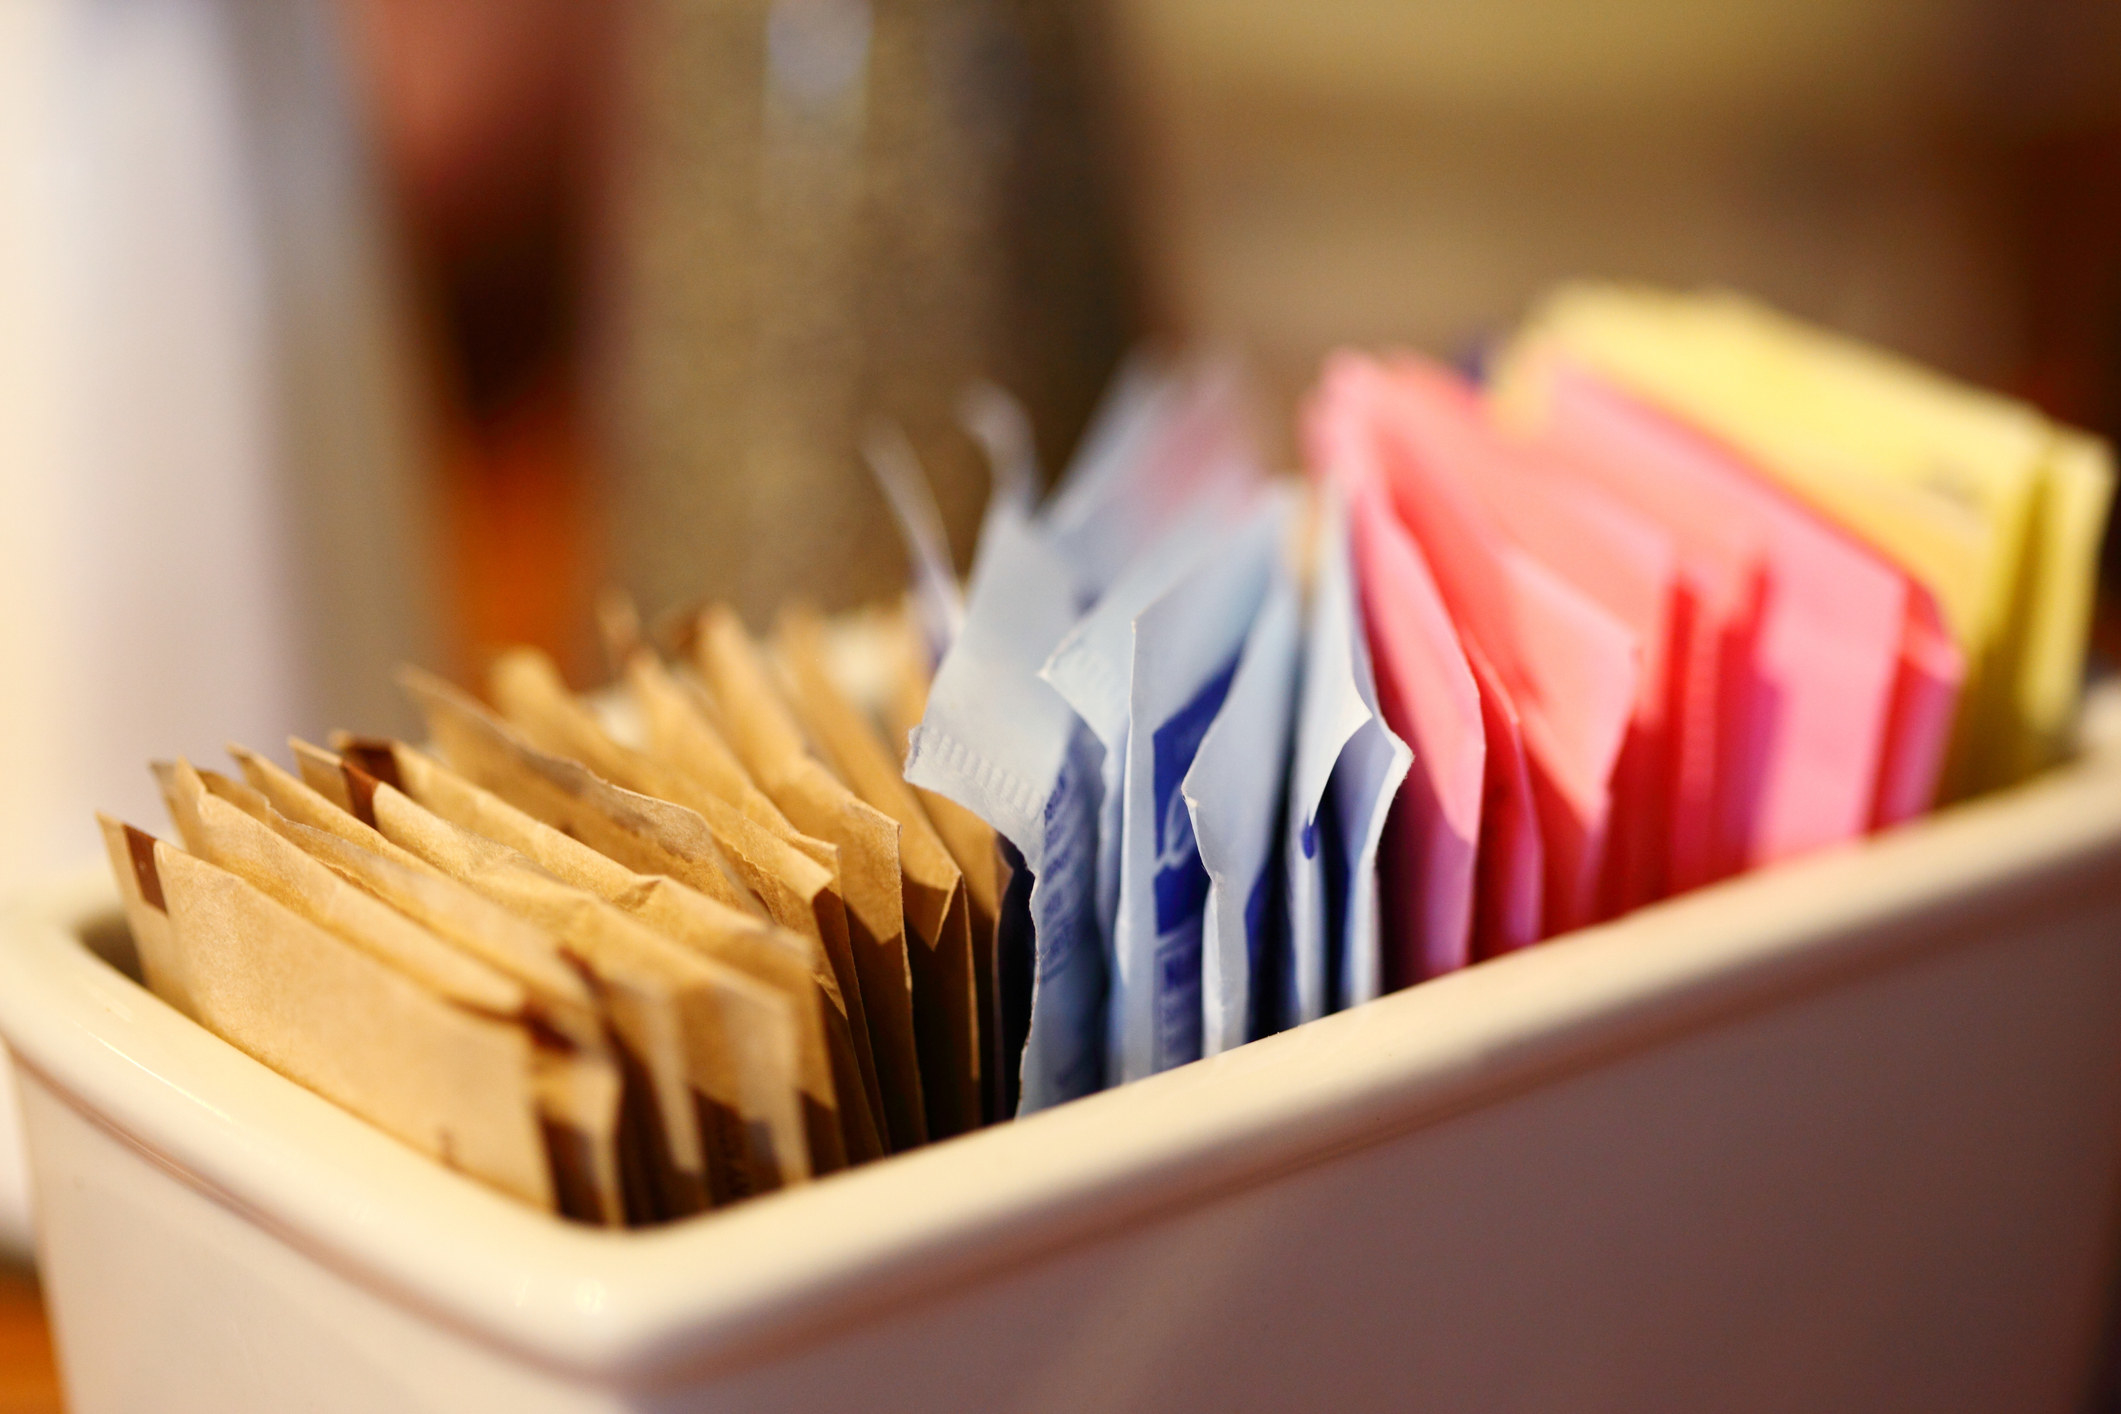 A close up of a dish holding various different sugar packets